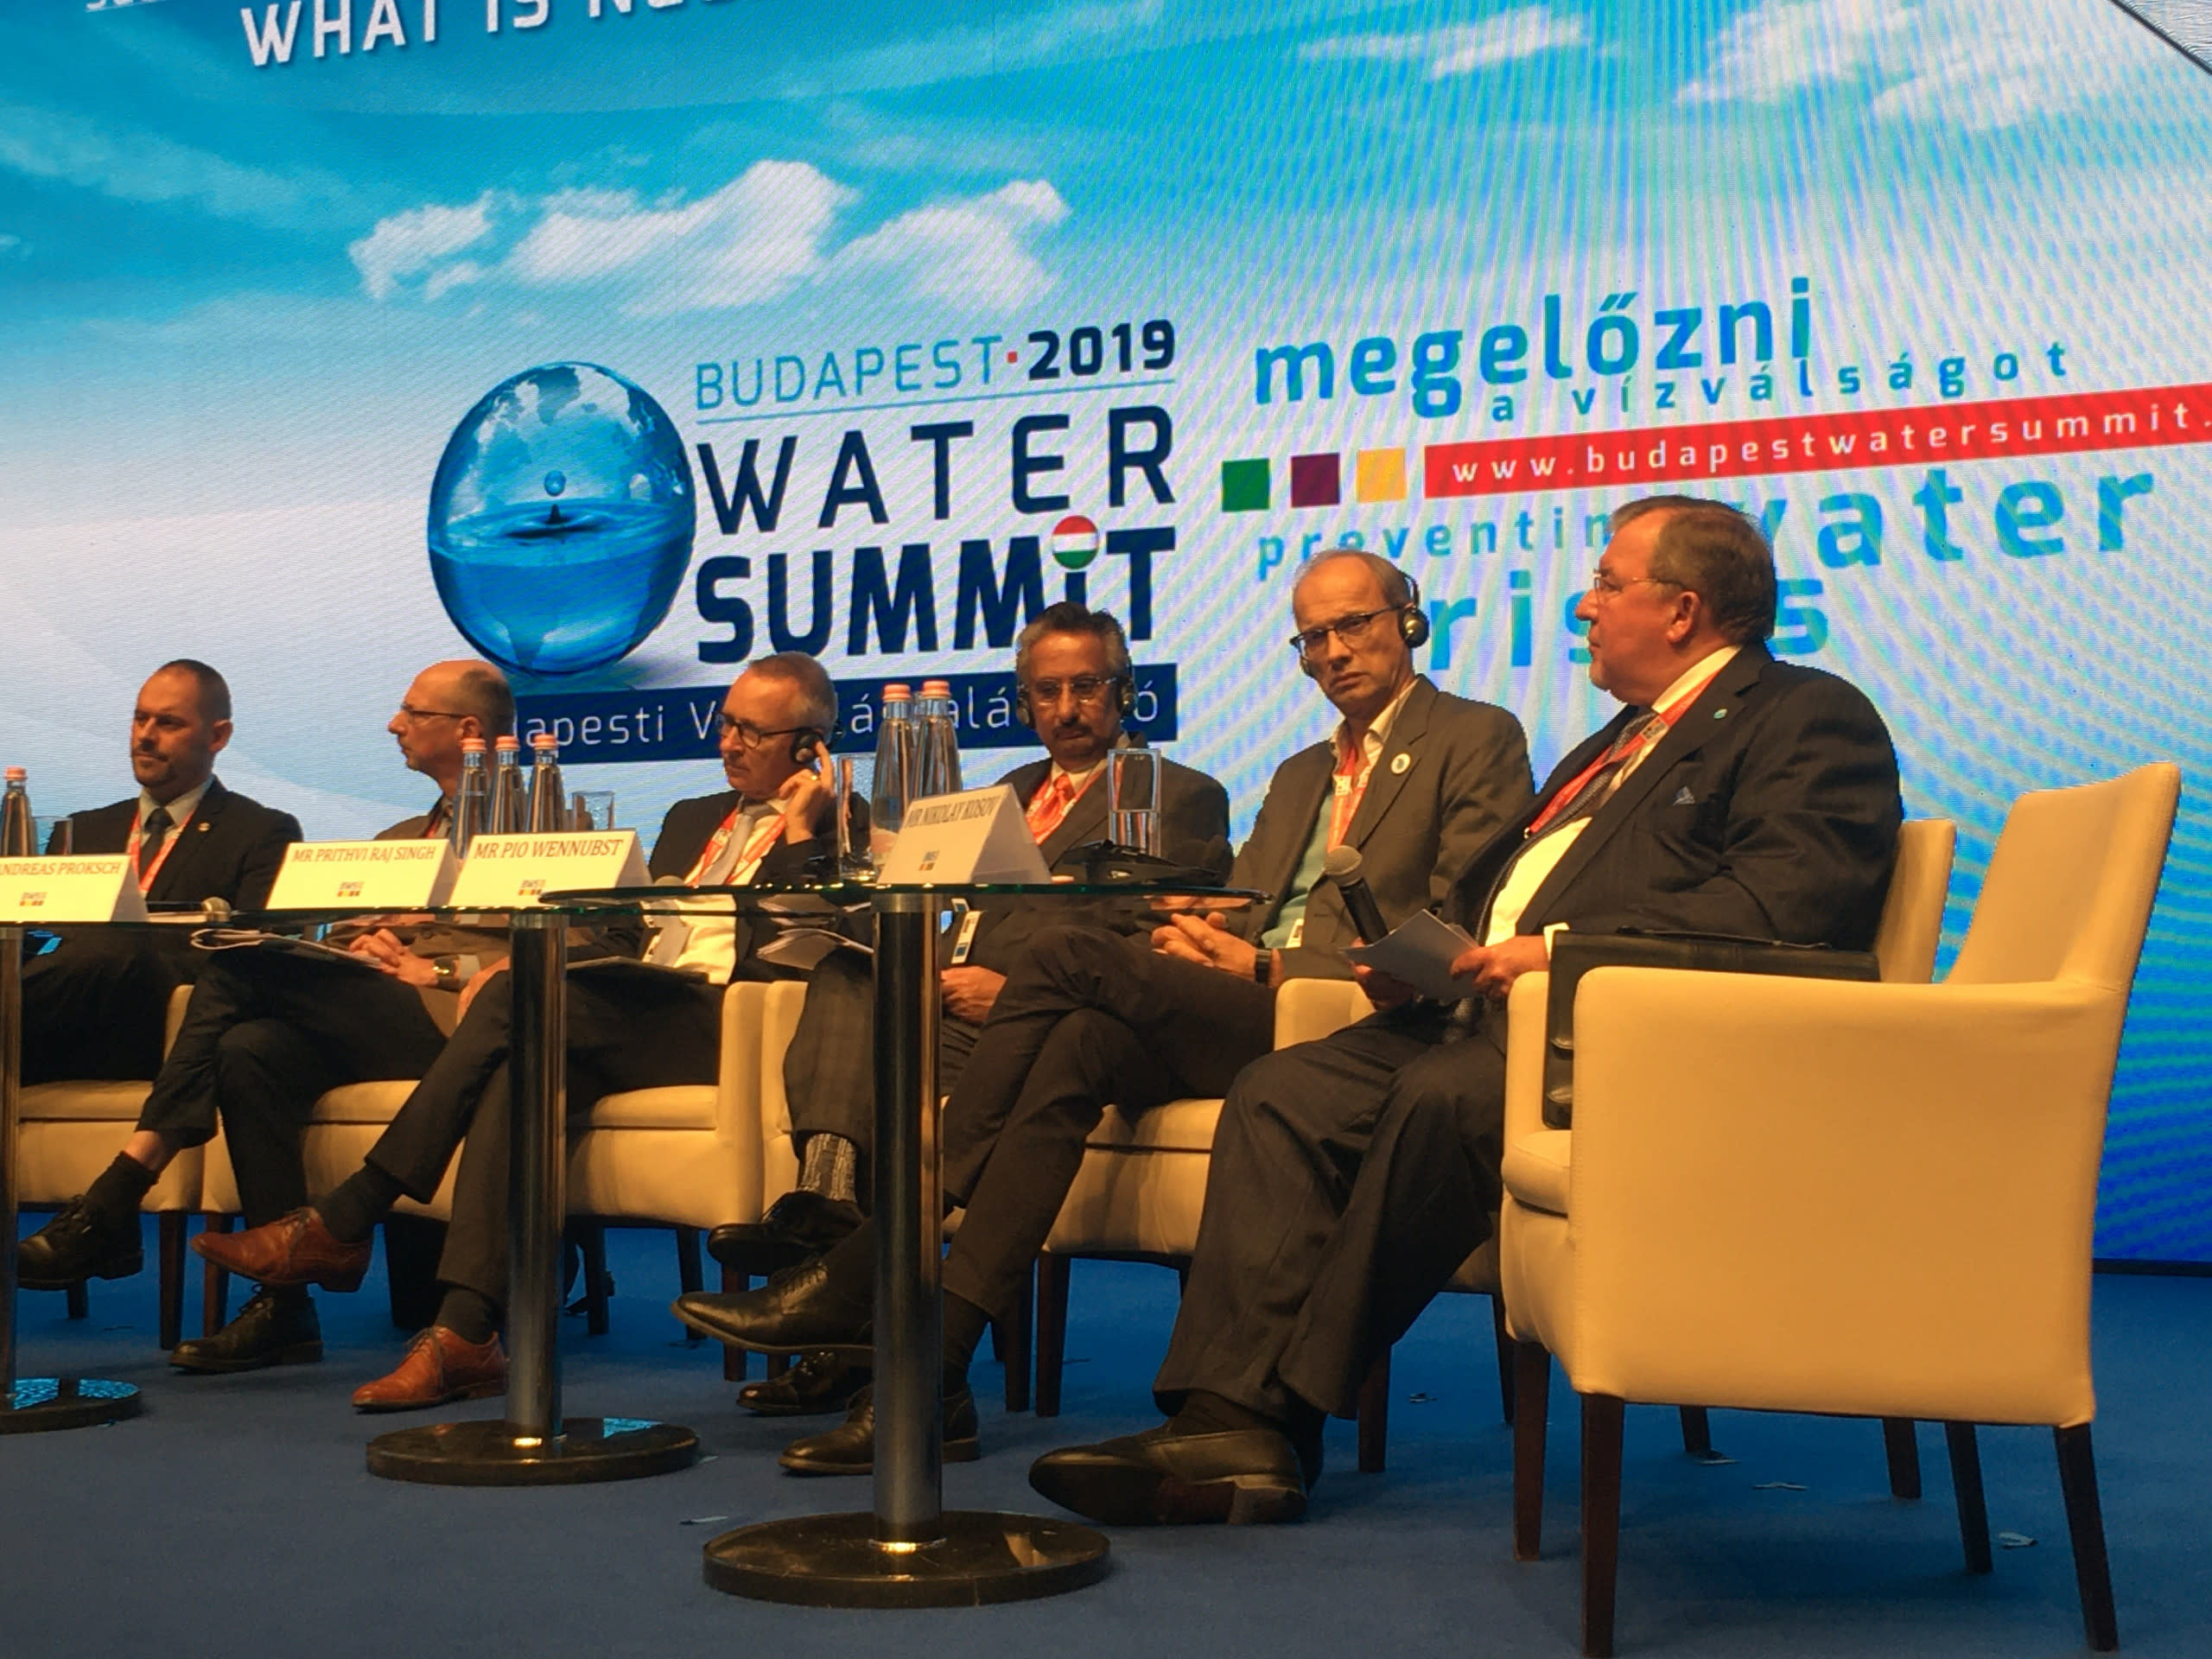 """IIB Chairperson Nikolay Kosov addressed the participants of the third Budapest Water Summit: """"It's time to unite all efforts to protect water resources on a global scale"""""""